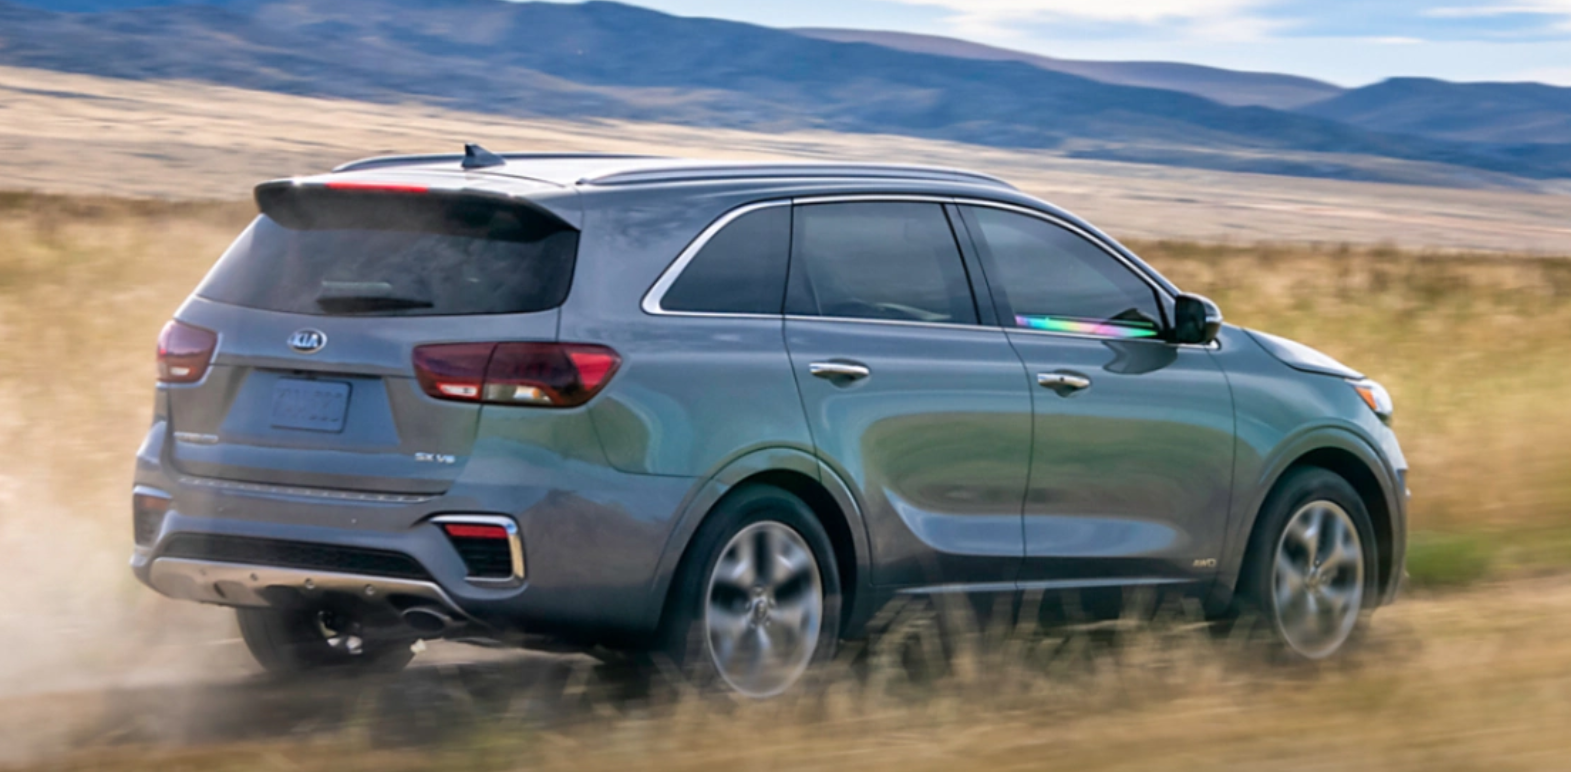 2020 Kia Sorento Rear View Gray Exterior Picture.png